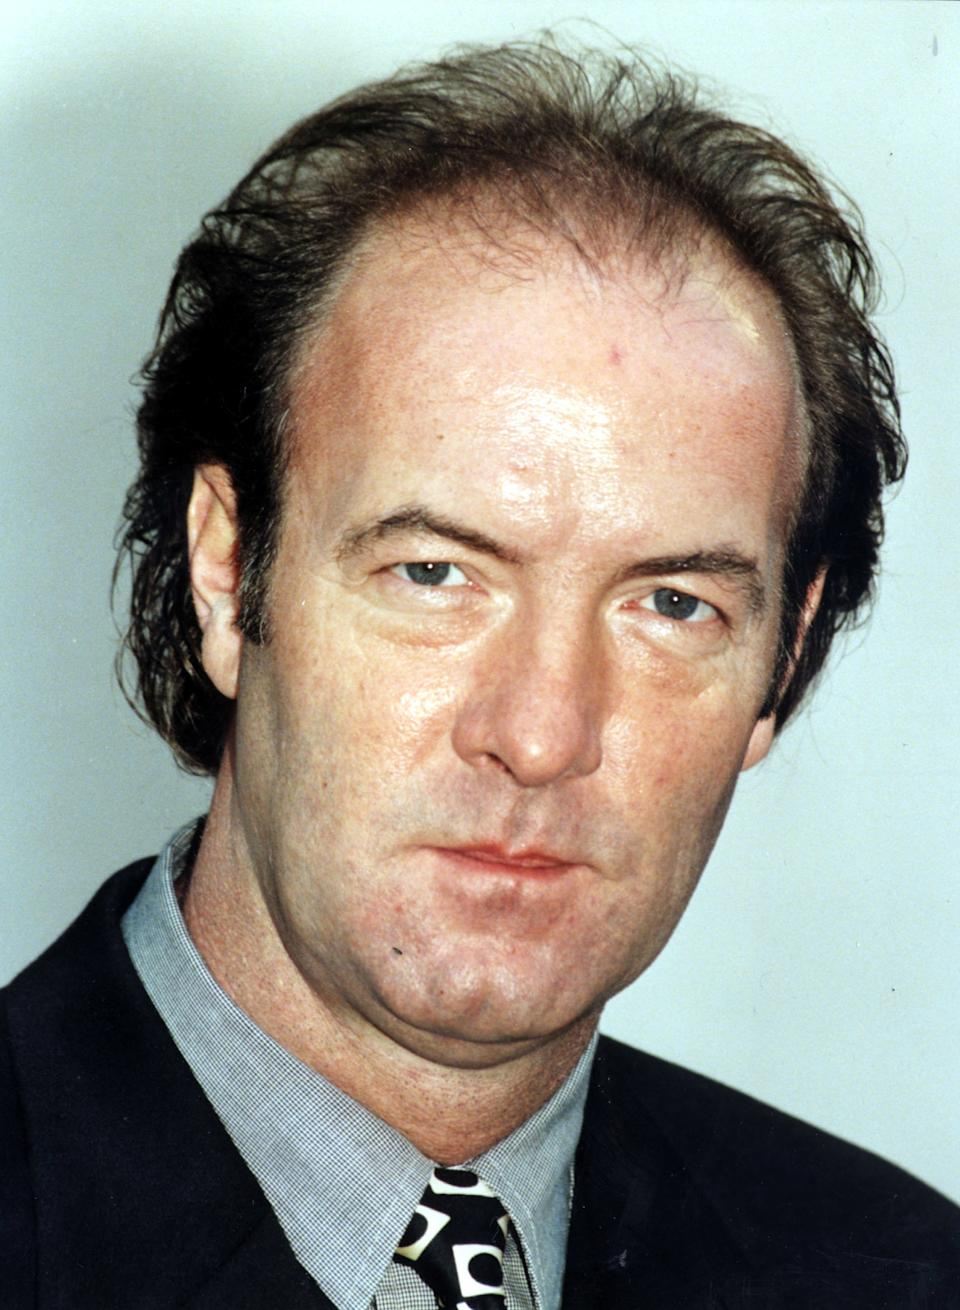 Actor Dean Sullivan who is best known for playing Jimmy Corkhill in the Channel Four soap opera Brookside.